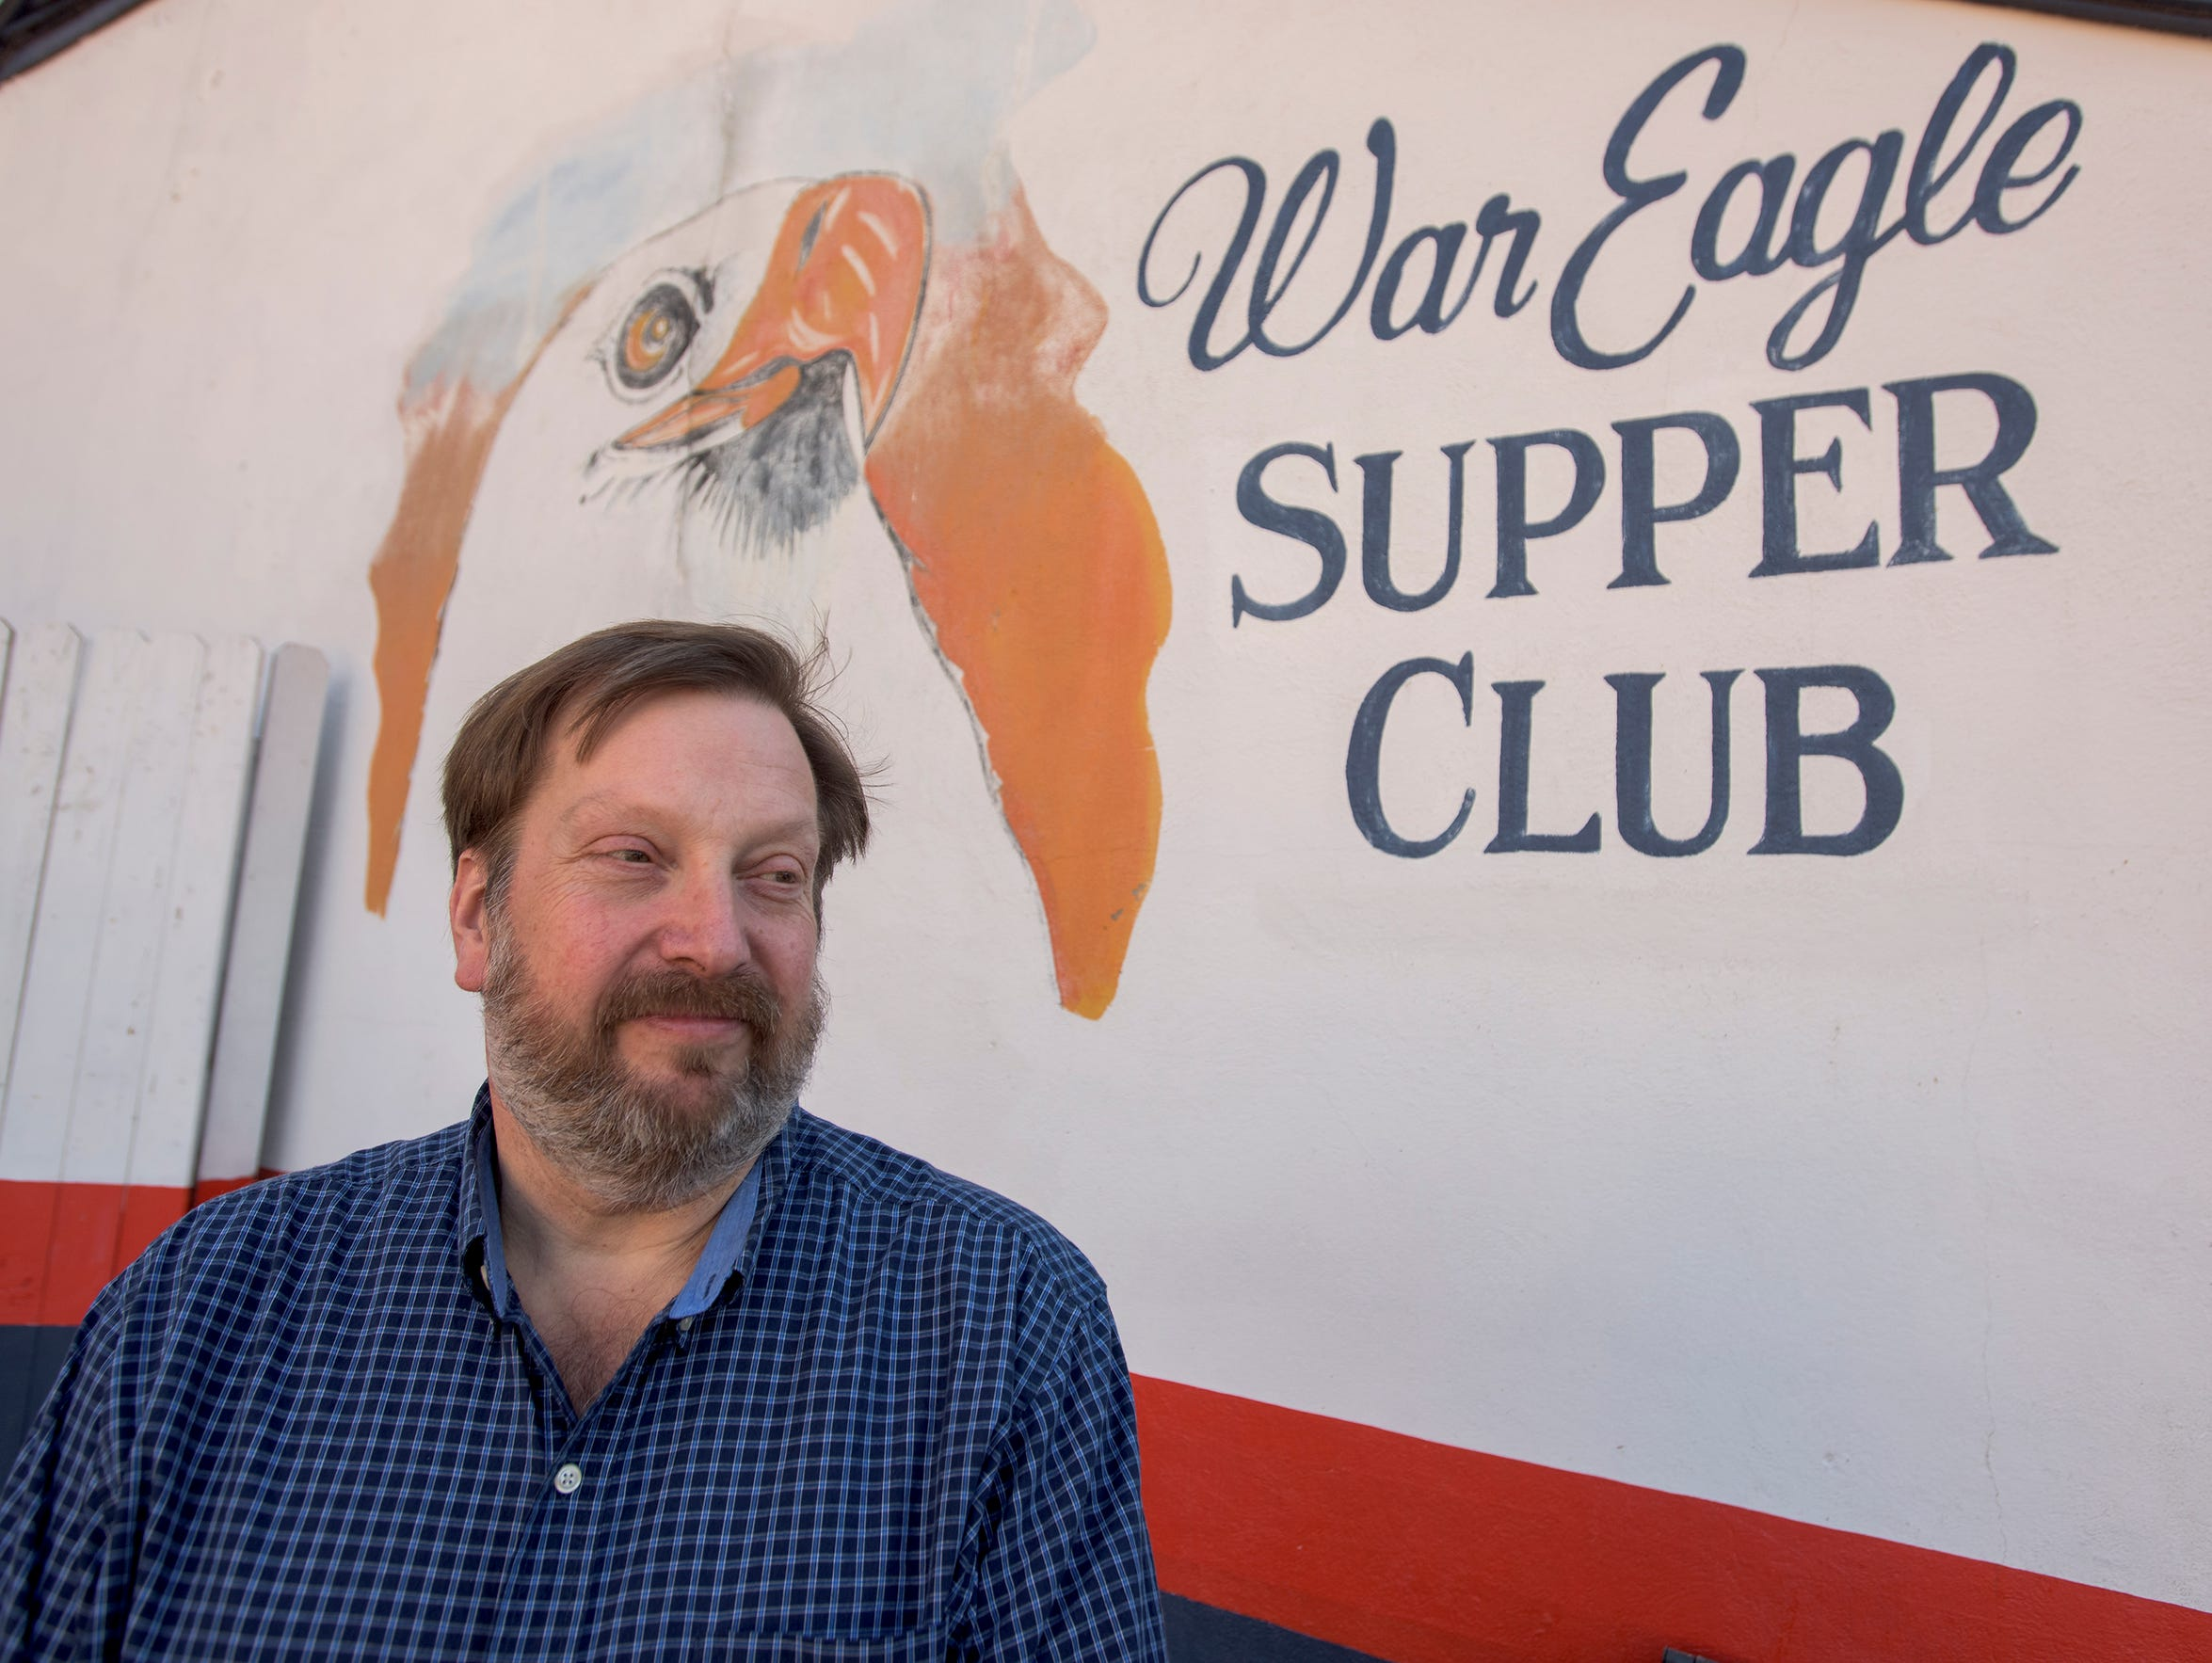 John Brandt, co-owner of the War Eagle Supper Club